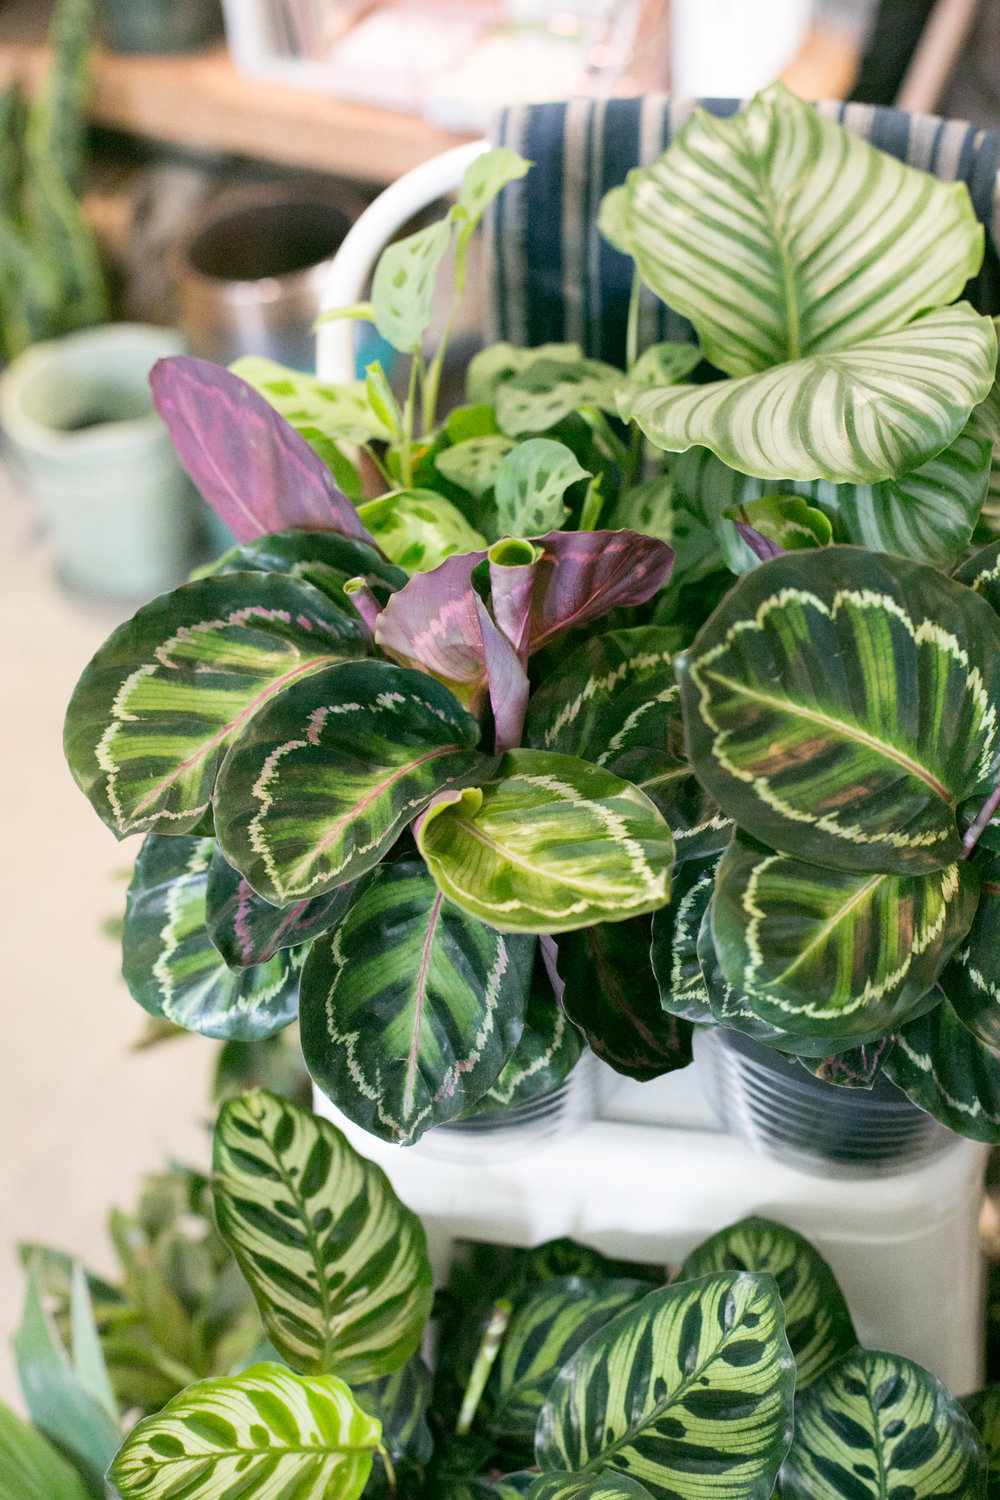 Huddling plants together, like these Calathea varieties, is a great way to increase humidity.